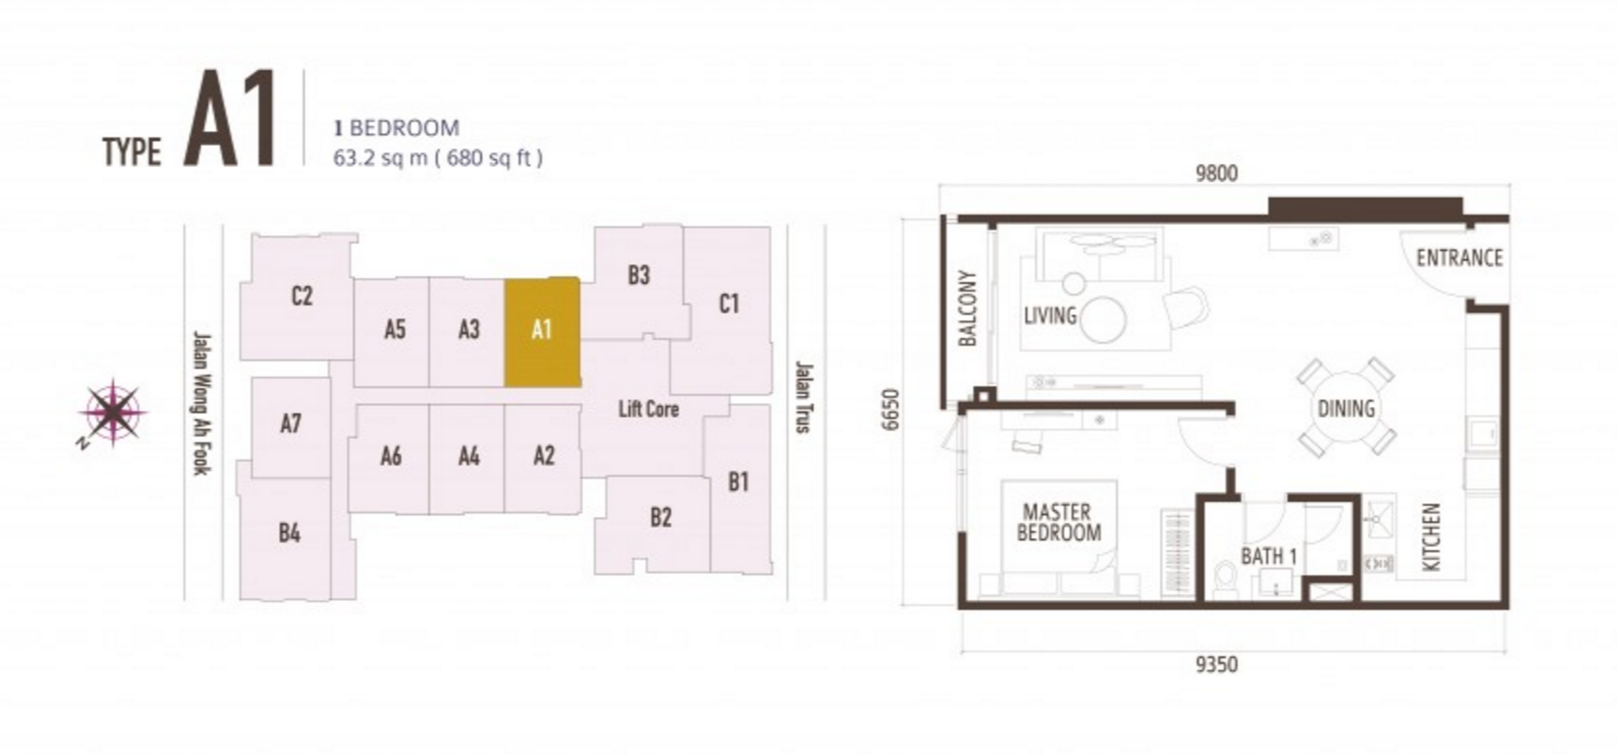 FloorPlan 1 Bedroom Type A1